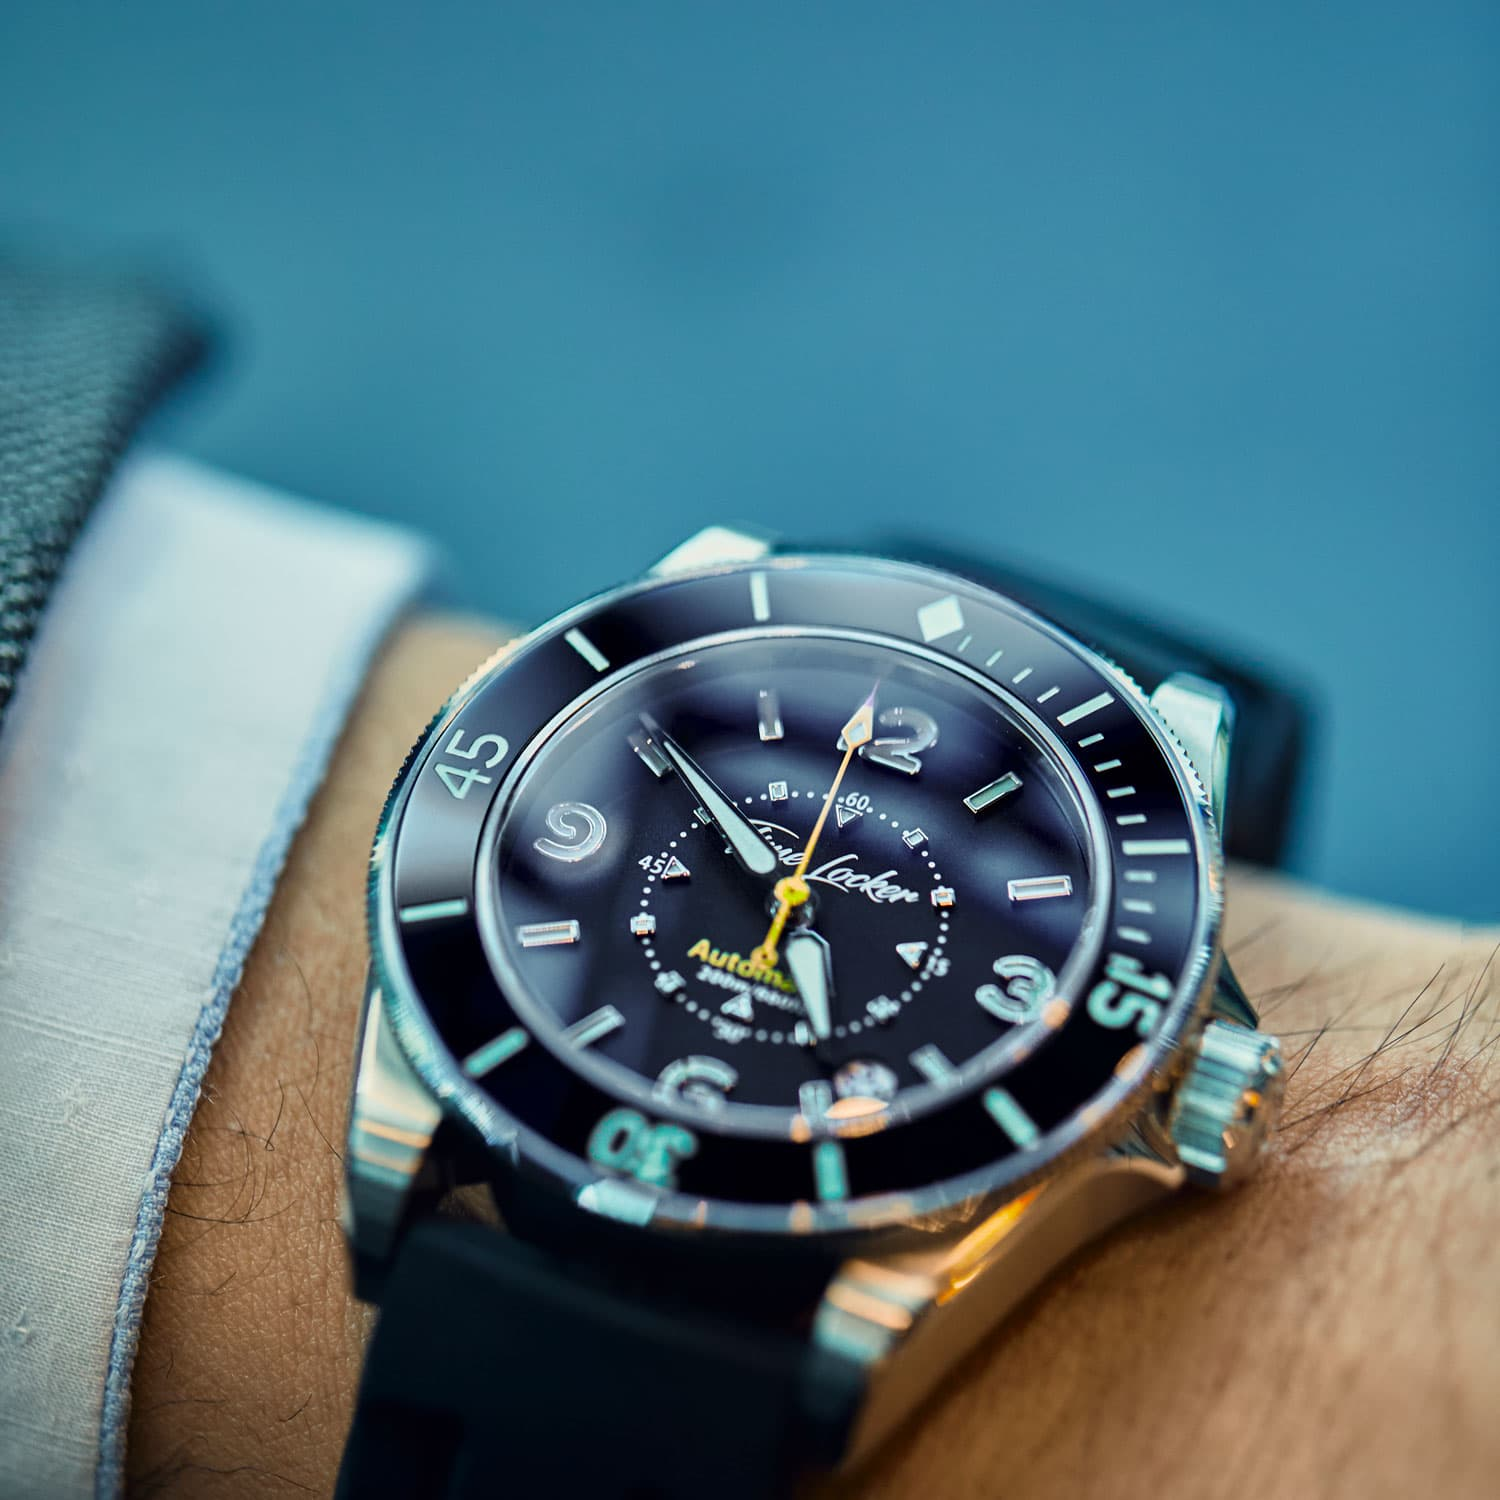 Kickstarter dive watch for men